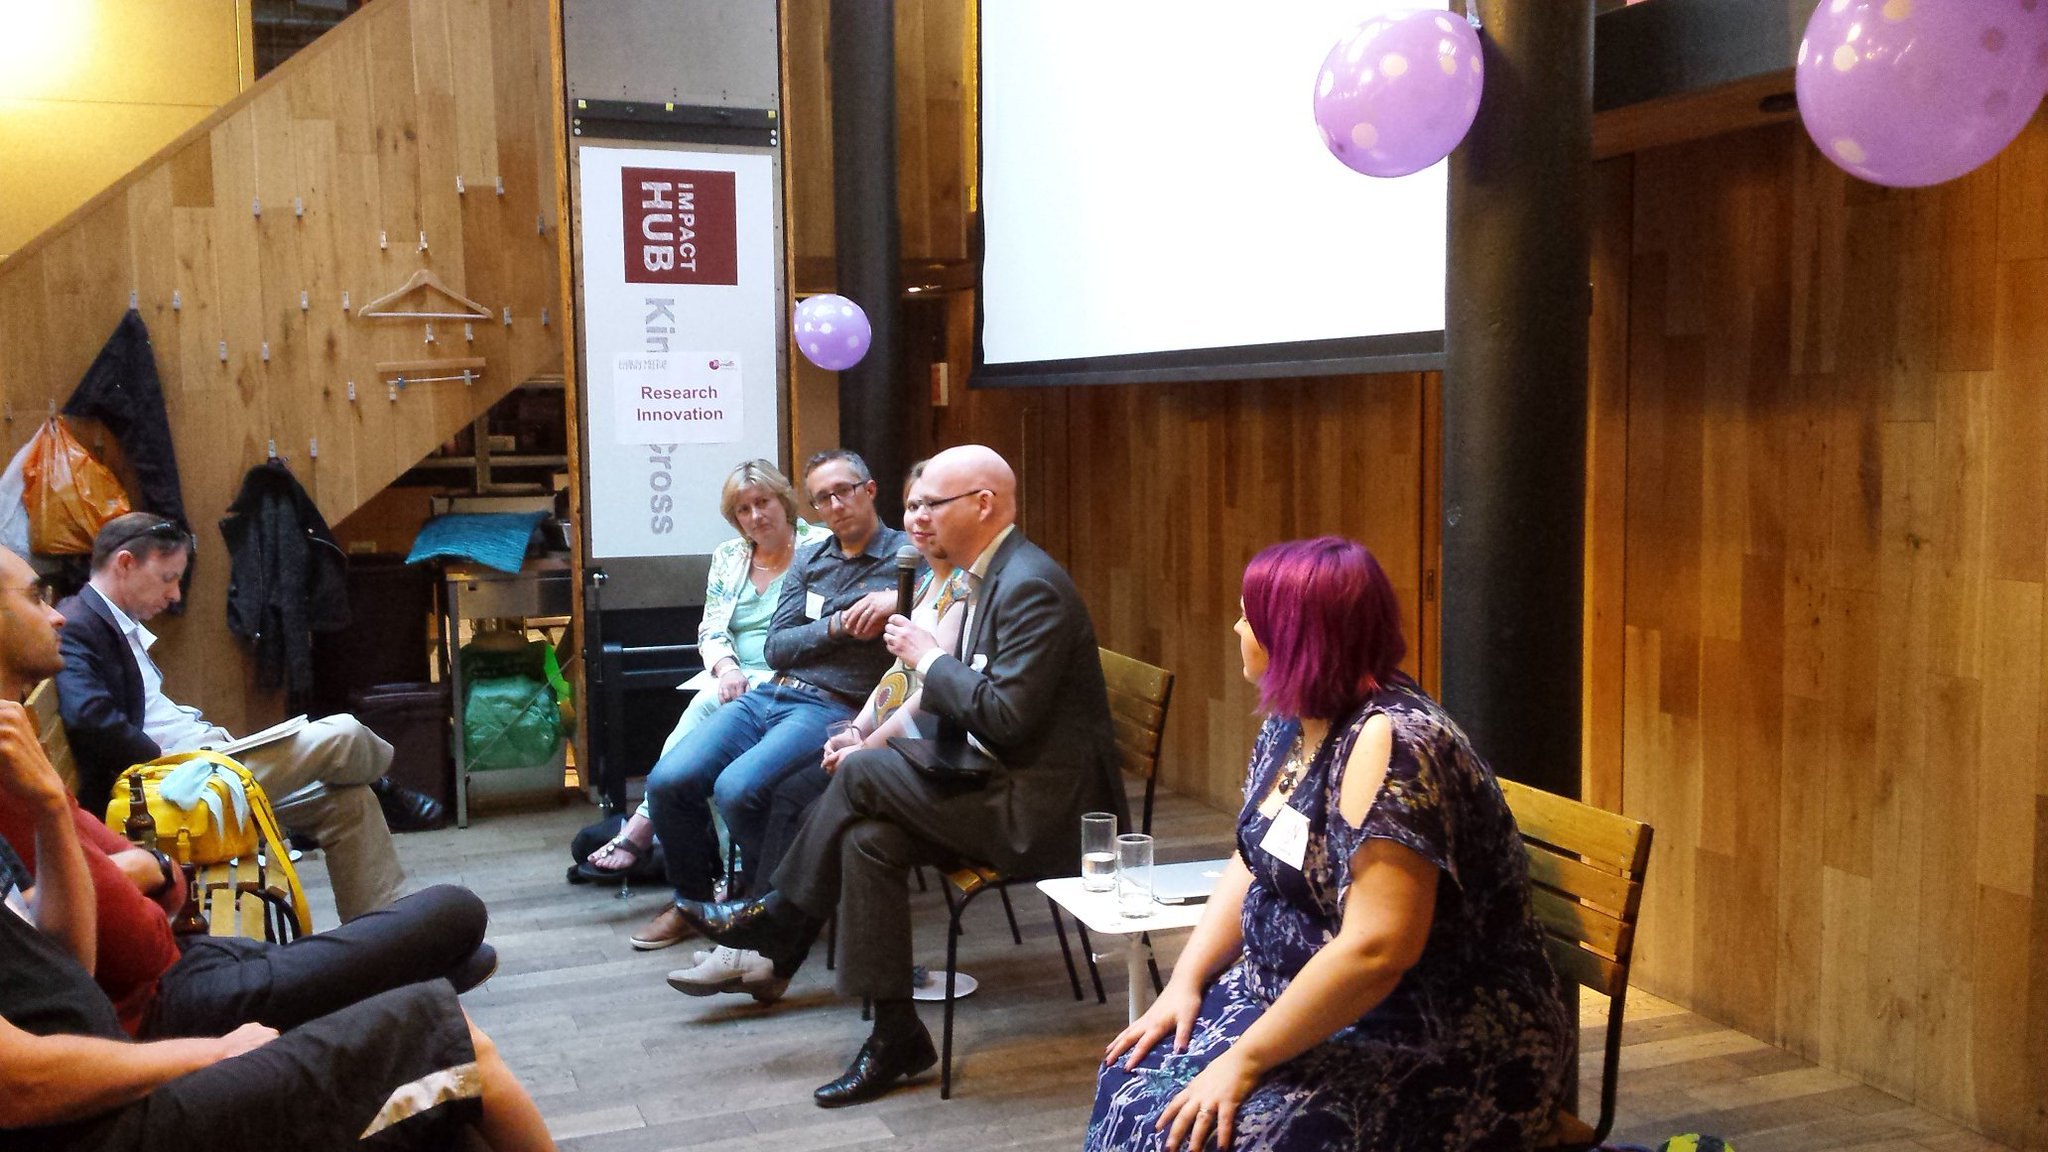 """If you're telling stories about your charity, start with WHY!"" says @billjking #charitymeetup https://t.co/lDgpAXTvzj"